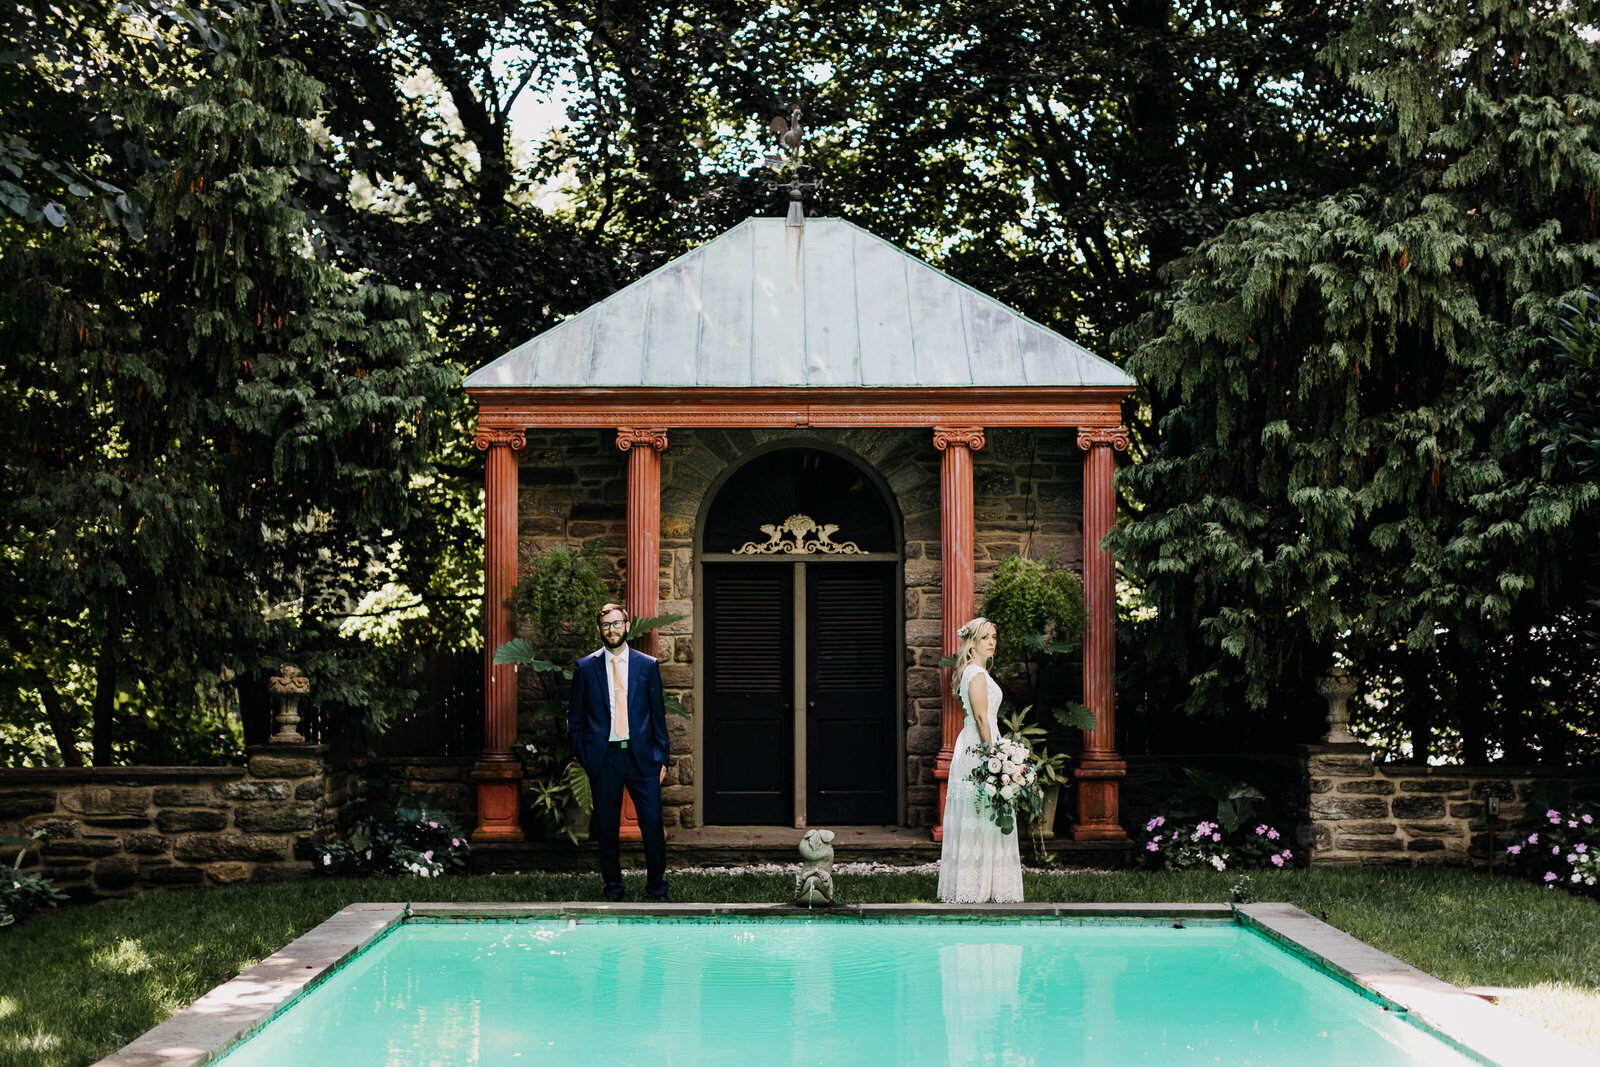 bride and groom in garden with pool